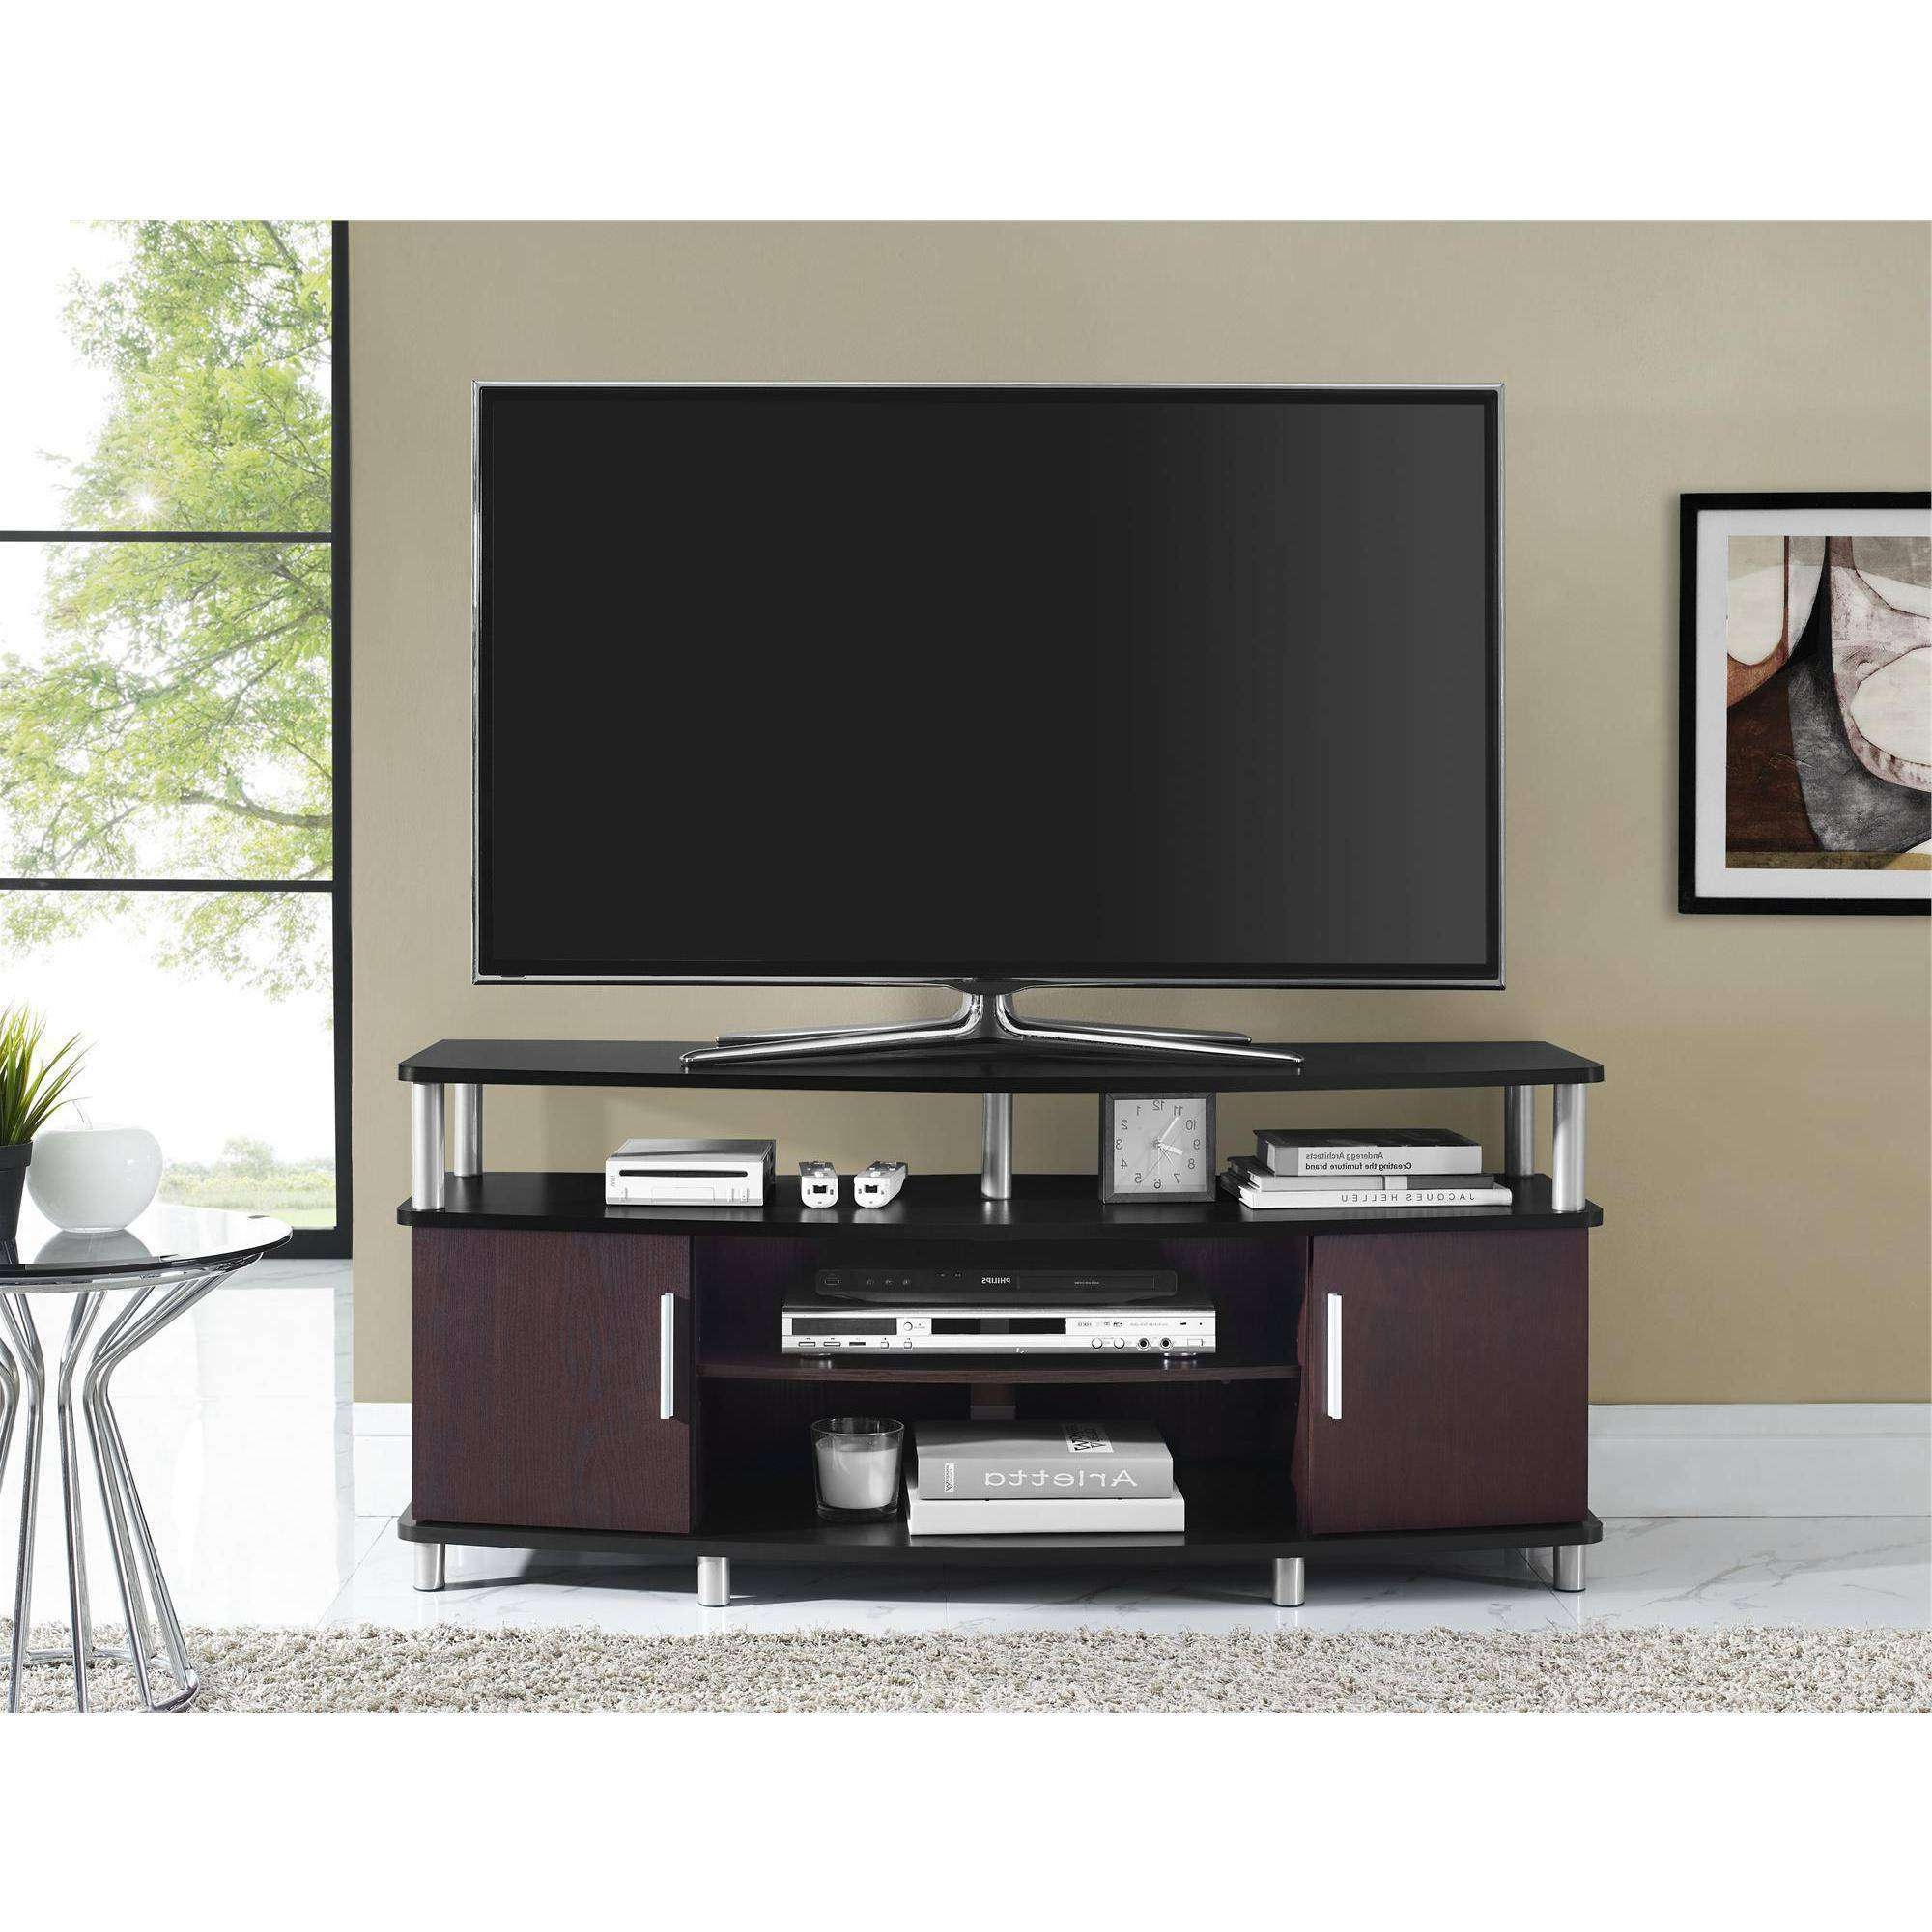 Flat Screen Tv Stands With Mount Furnitures Modern For Inch In Modern Tv Stands For Flat Screens (View 6 of 15)